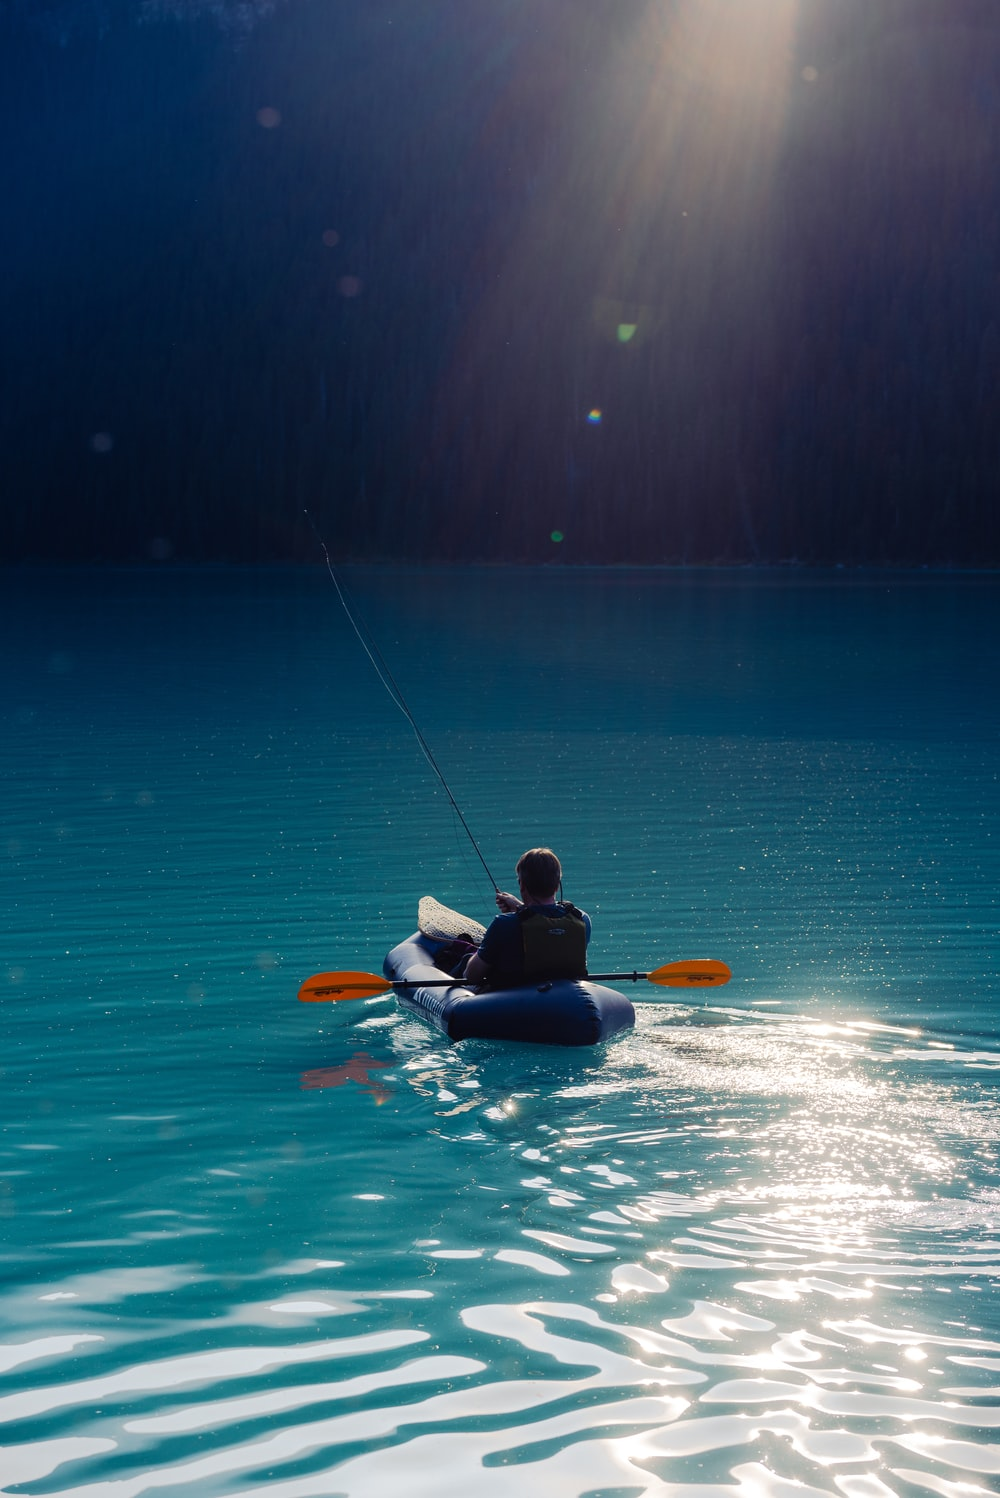 person riding on kayak on body of water during daytime